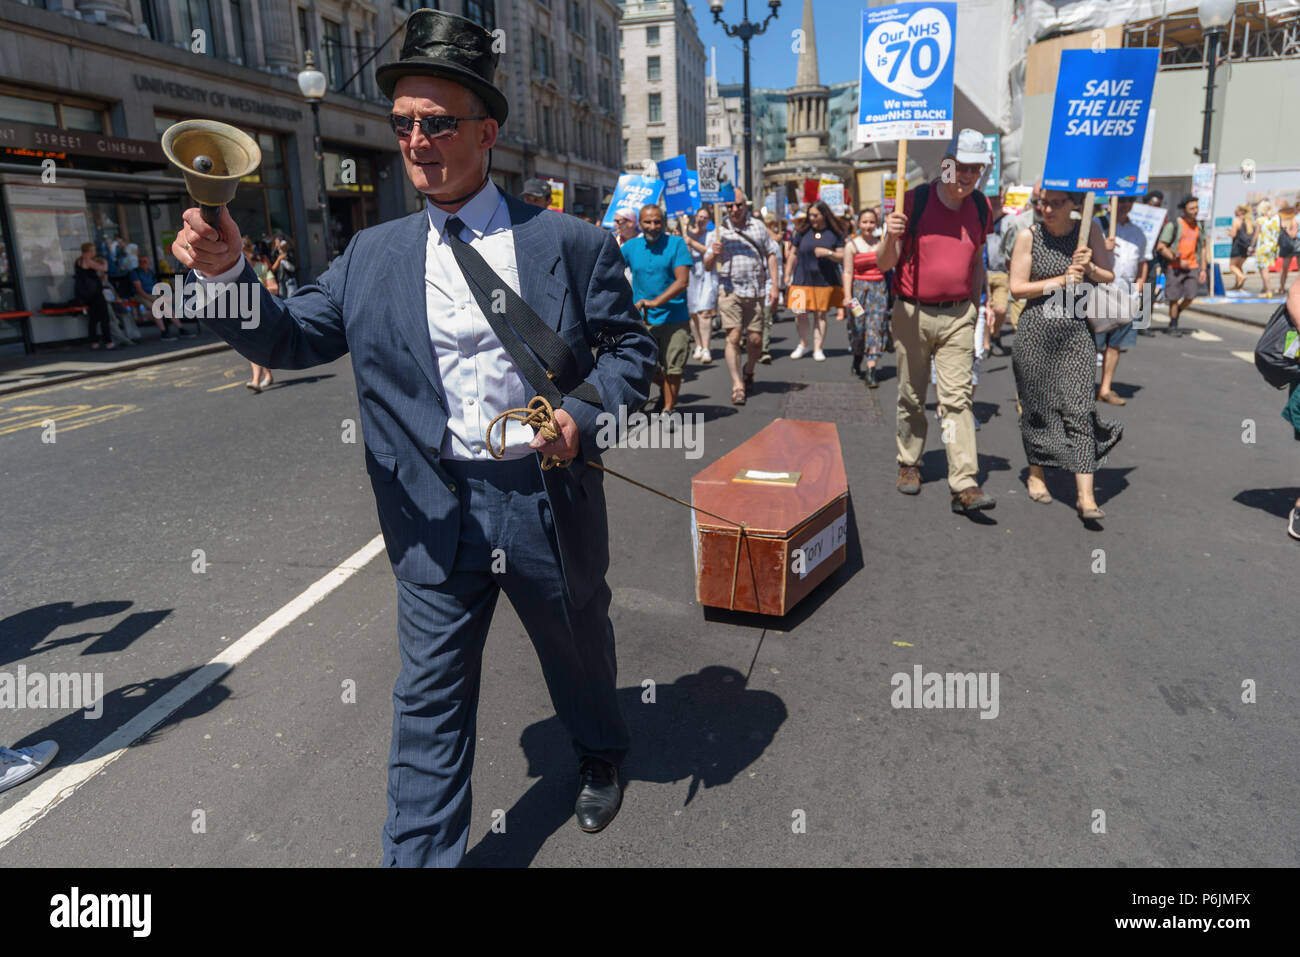 June 30, 2018 - London, UK. 30th June 2018. A man in a black top hat and tie rings a bell as he drags a coffin representing the NHS on the march through London from the BBC to a rally near Downing St to celebrate 70 years of the NHS, and to support its dedicated workers in demanding a publicly owned NHS that is free for all with proper funding and proper staffing and providing a world class services for every community. The protest, organised by the the People's Assembly, Health Campaigns Together, Trades Union Congress, Unison, Unite, GMB, British Medical Association, Royal College of Nursi - Stock Image